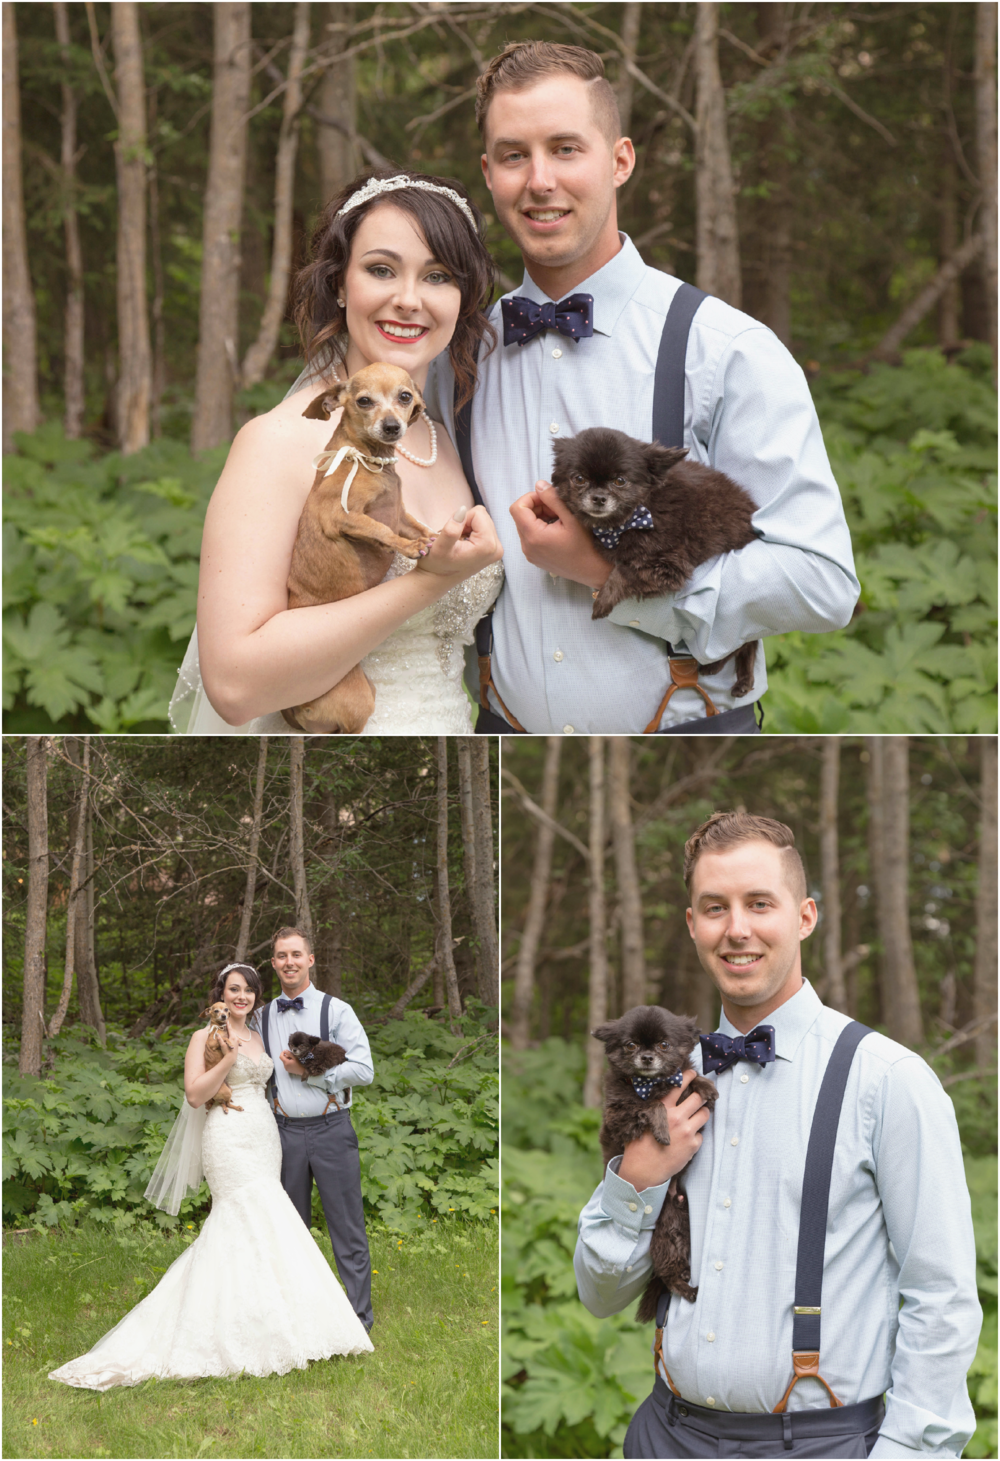 elkwater_wedding_photography_20.png